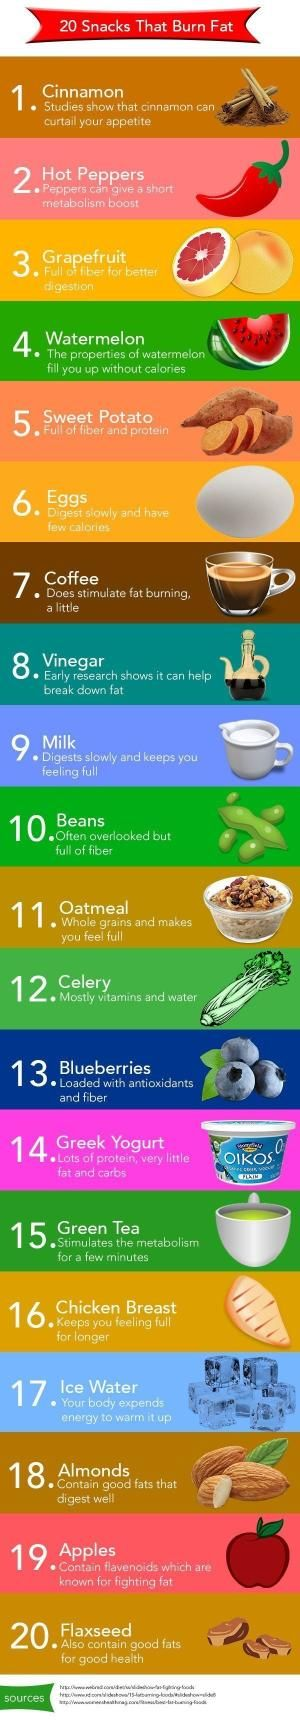 Best tasting weight loss foods image 5